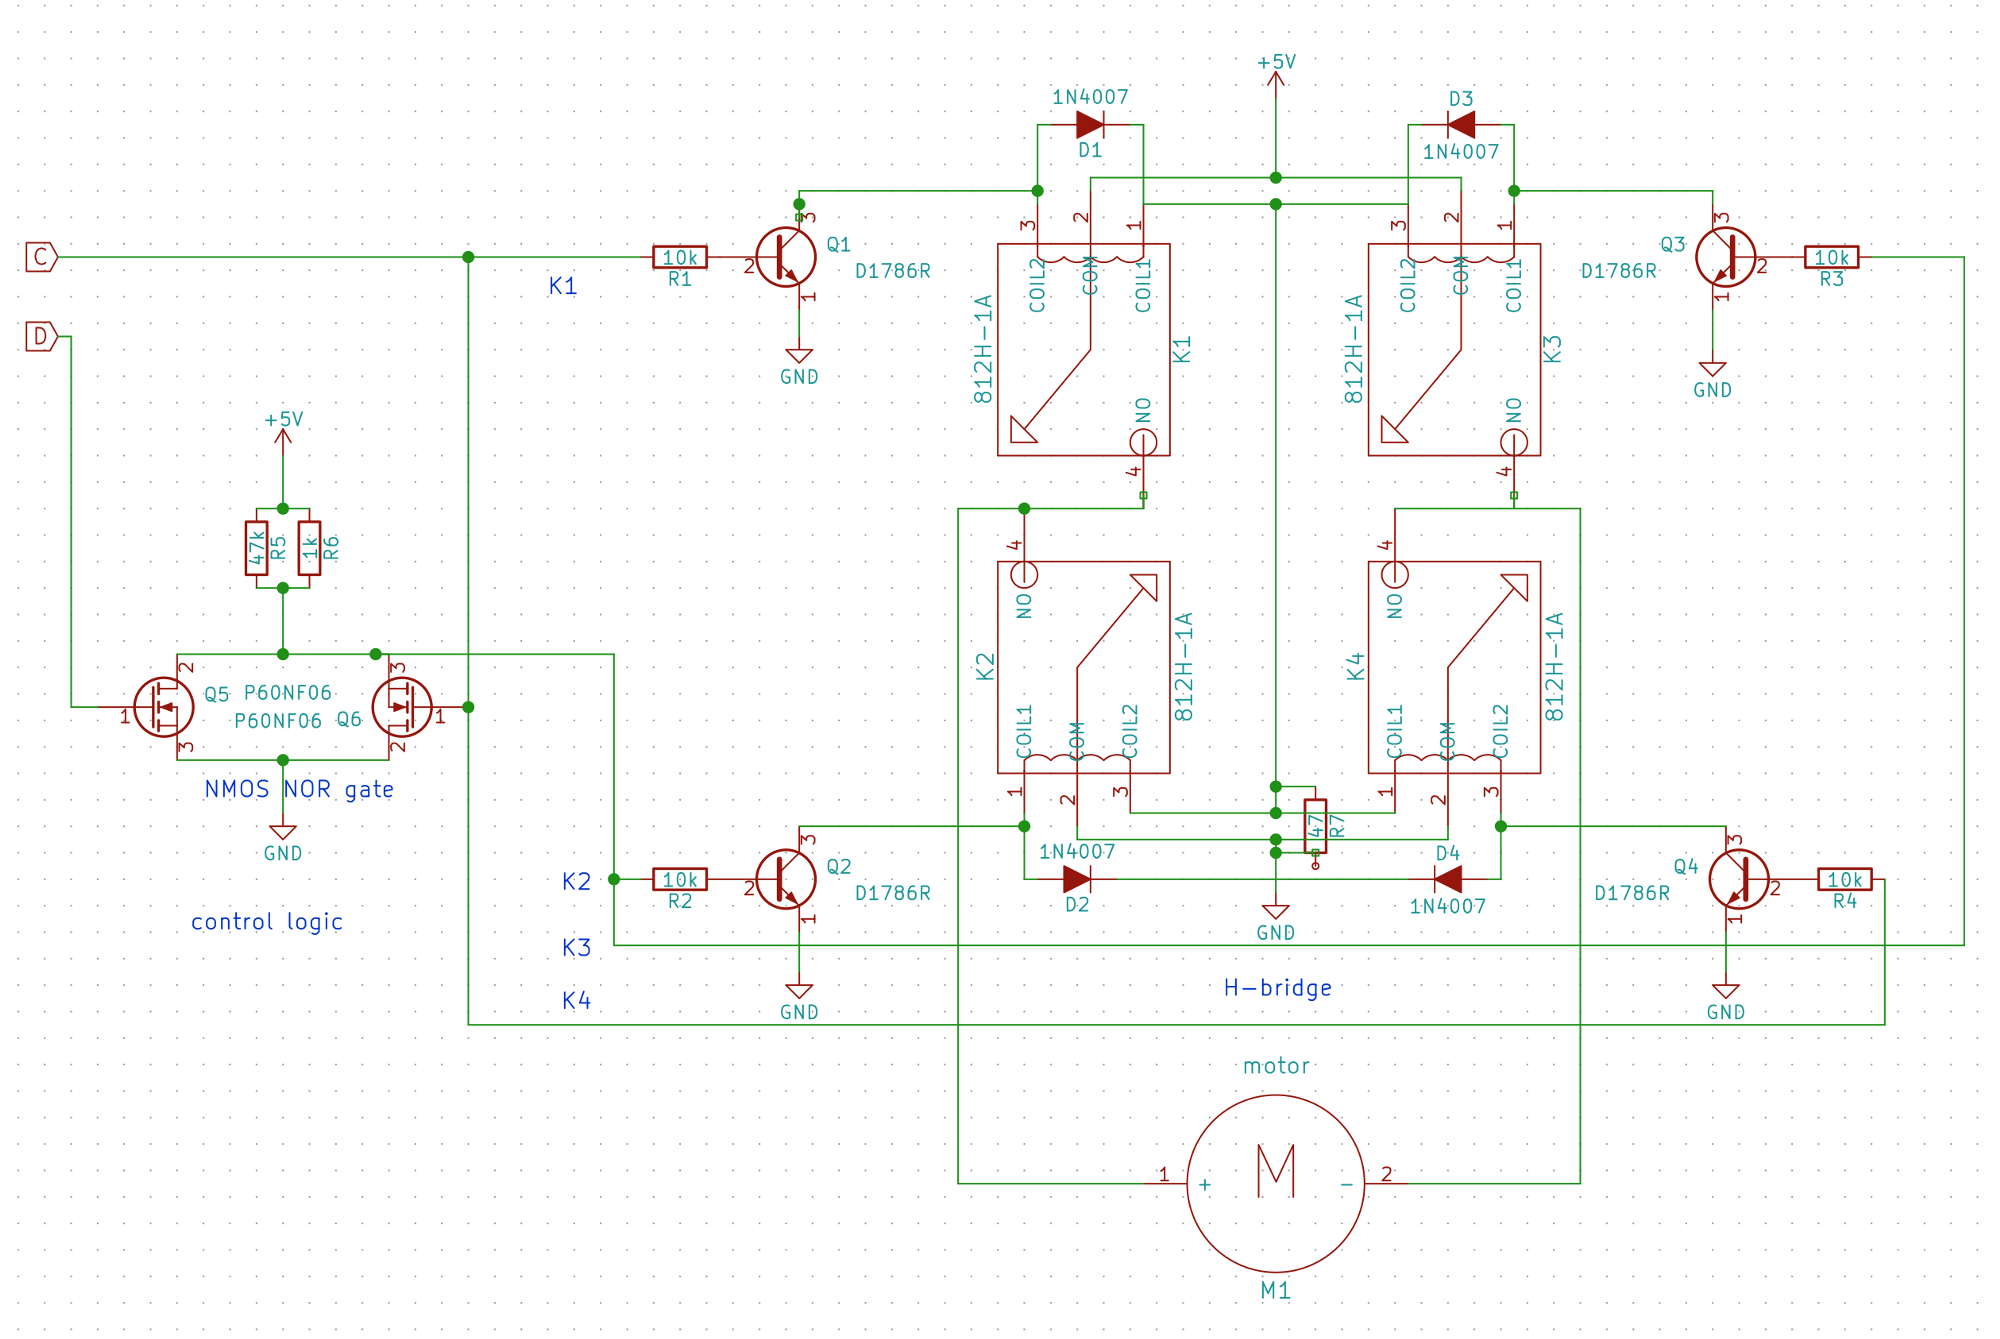 Building An H Bridge From A Salvaged Uninterruptible Power Supply Description Standby Ups Diagrampng Kicad Schematic Now Available At Https Githubcom Rxseger Rp Hbridge